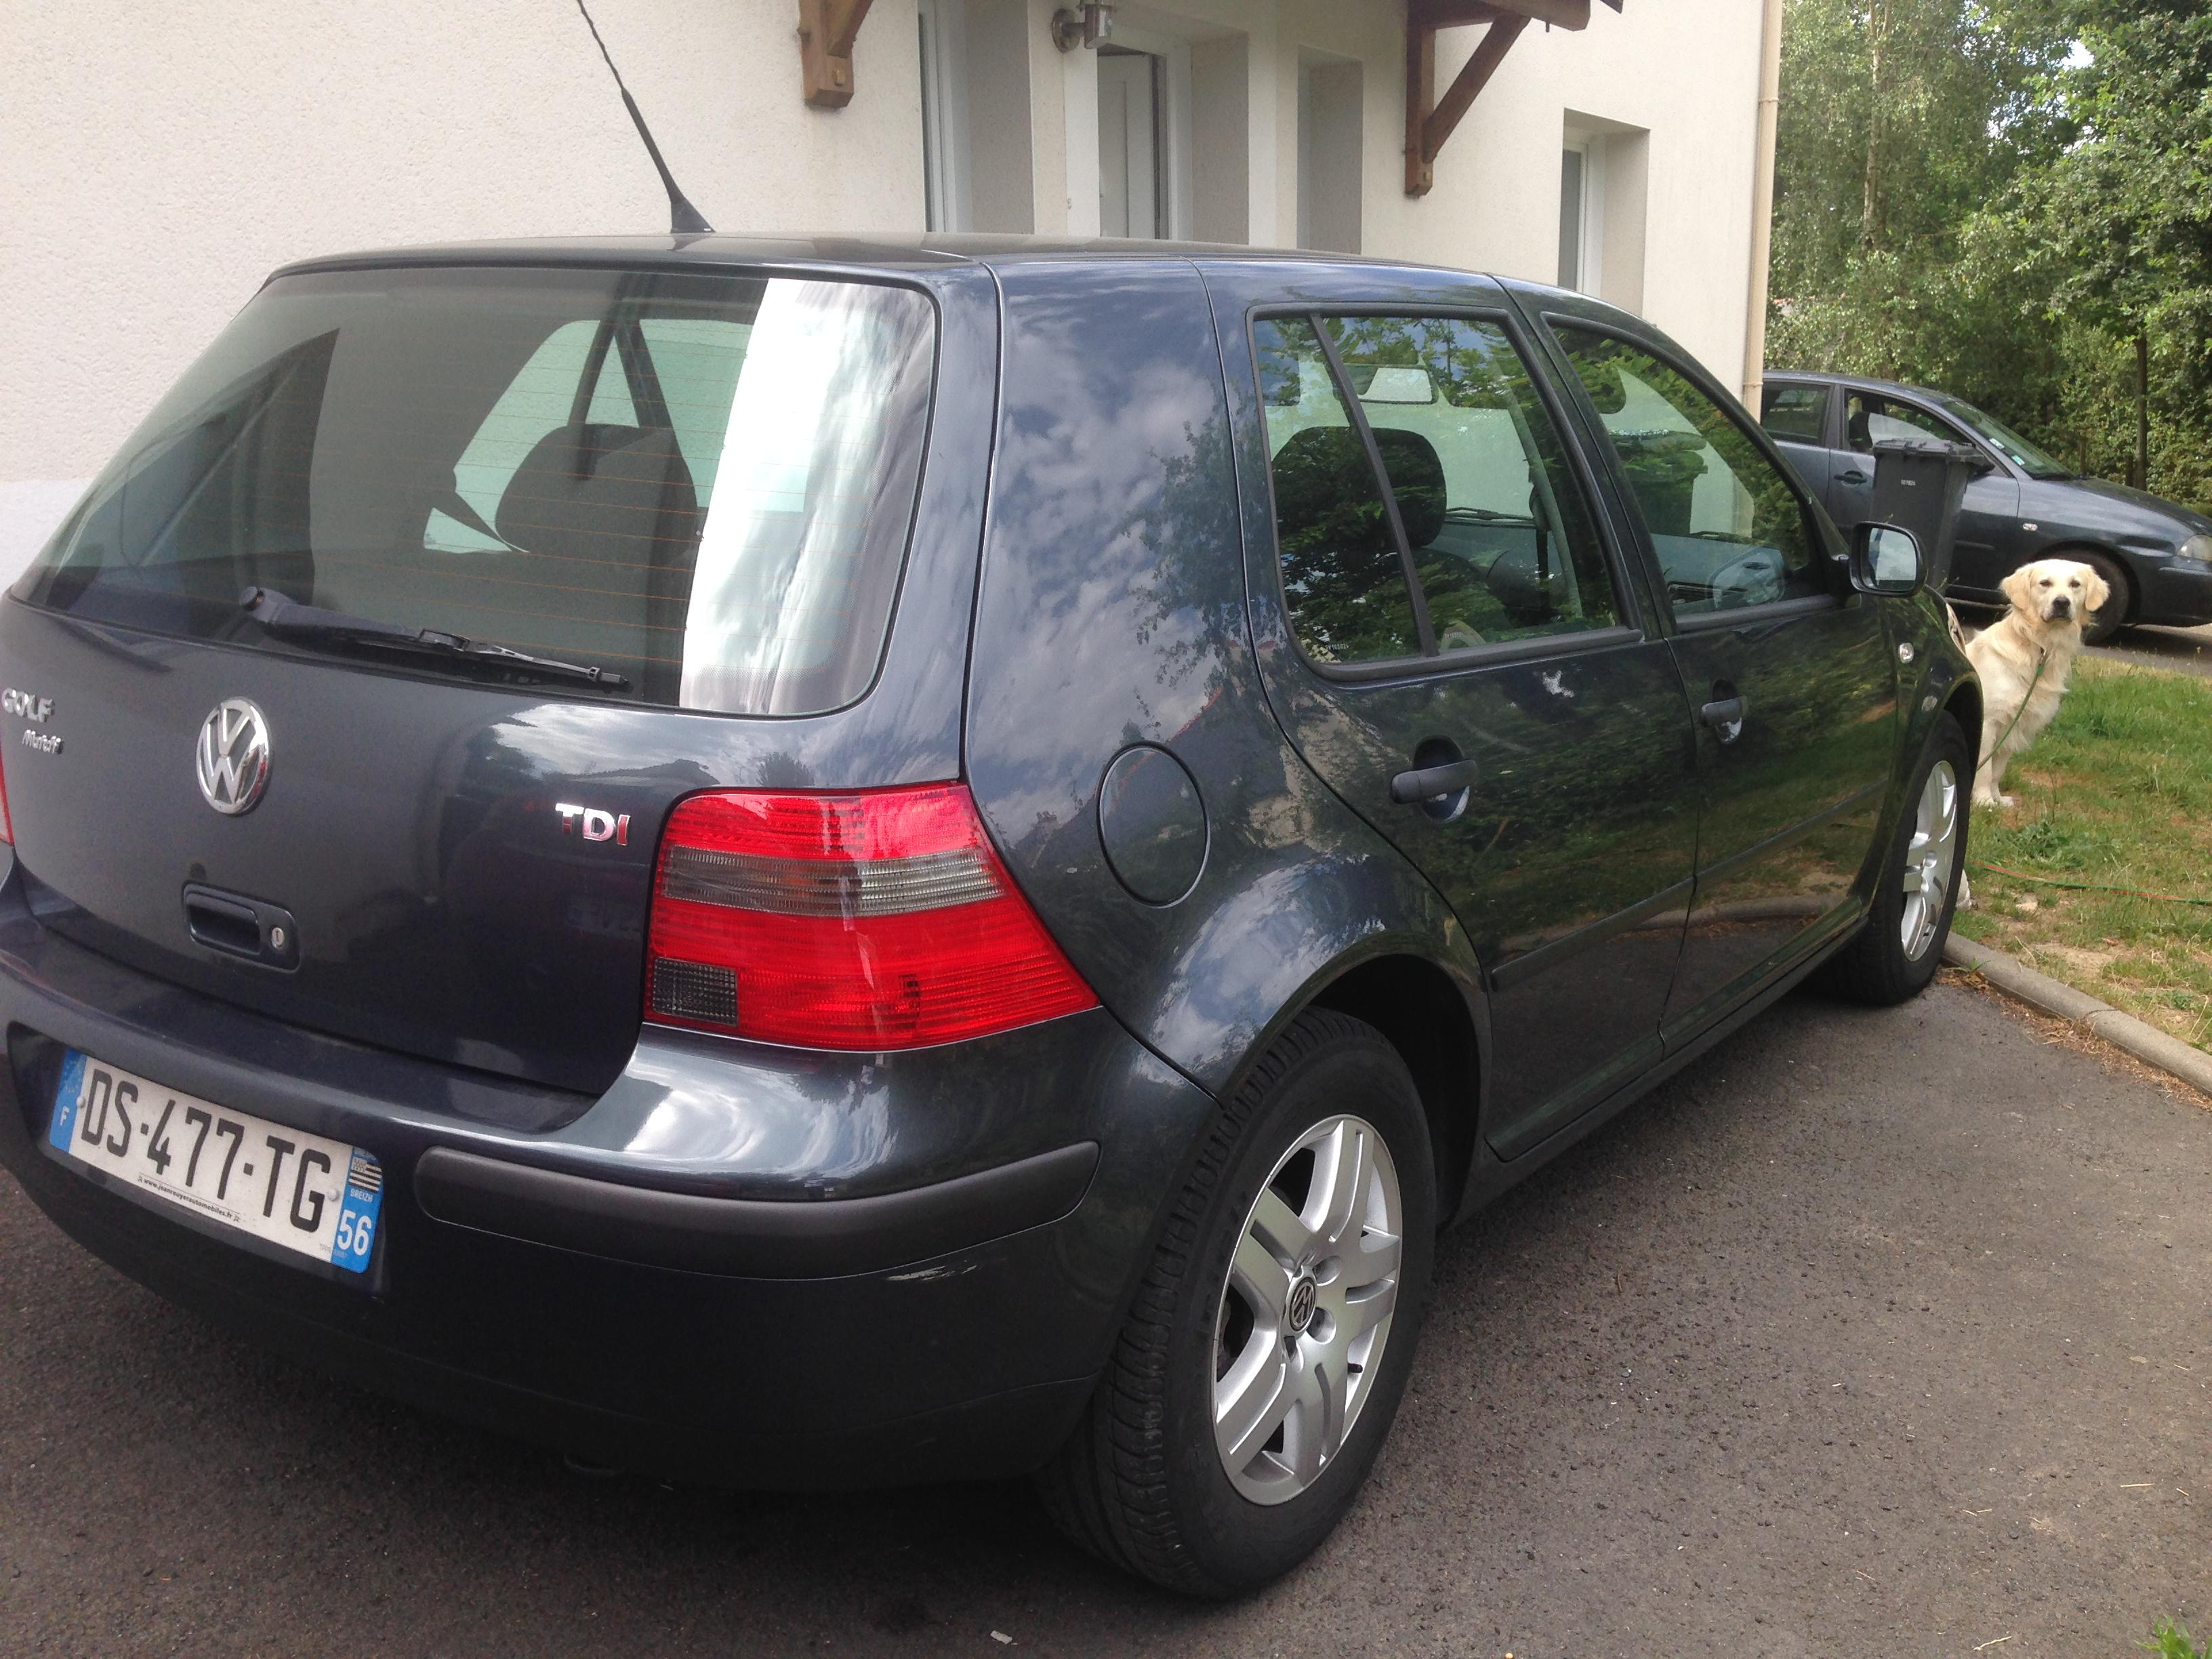 vw golf iv tdi 130 match 1983 garage des golf iv tdi 130 forum volkswagen golf iv. Black Bedroom Furniture Sets. Home Design Ideas